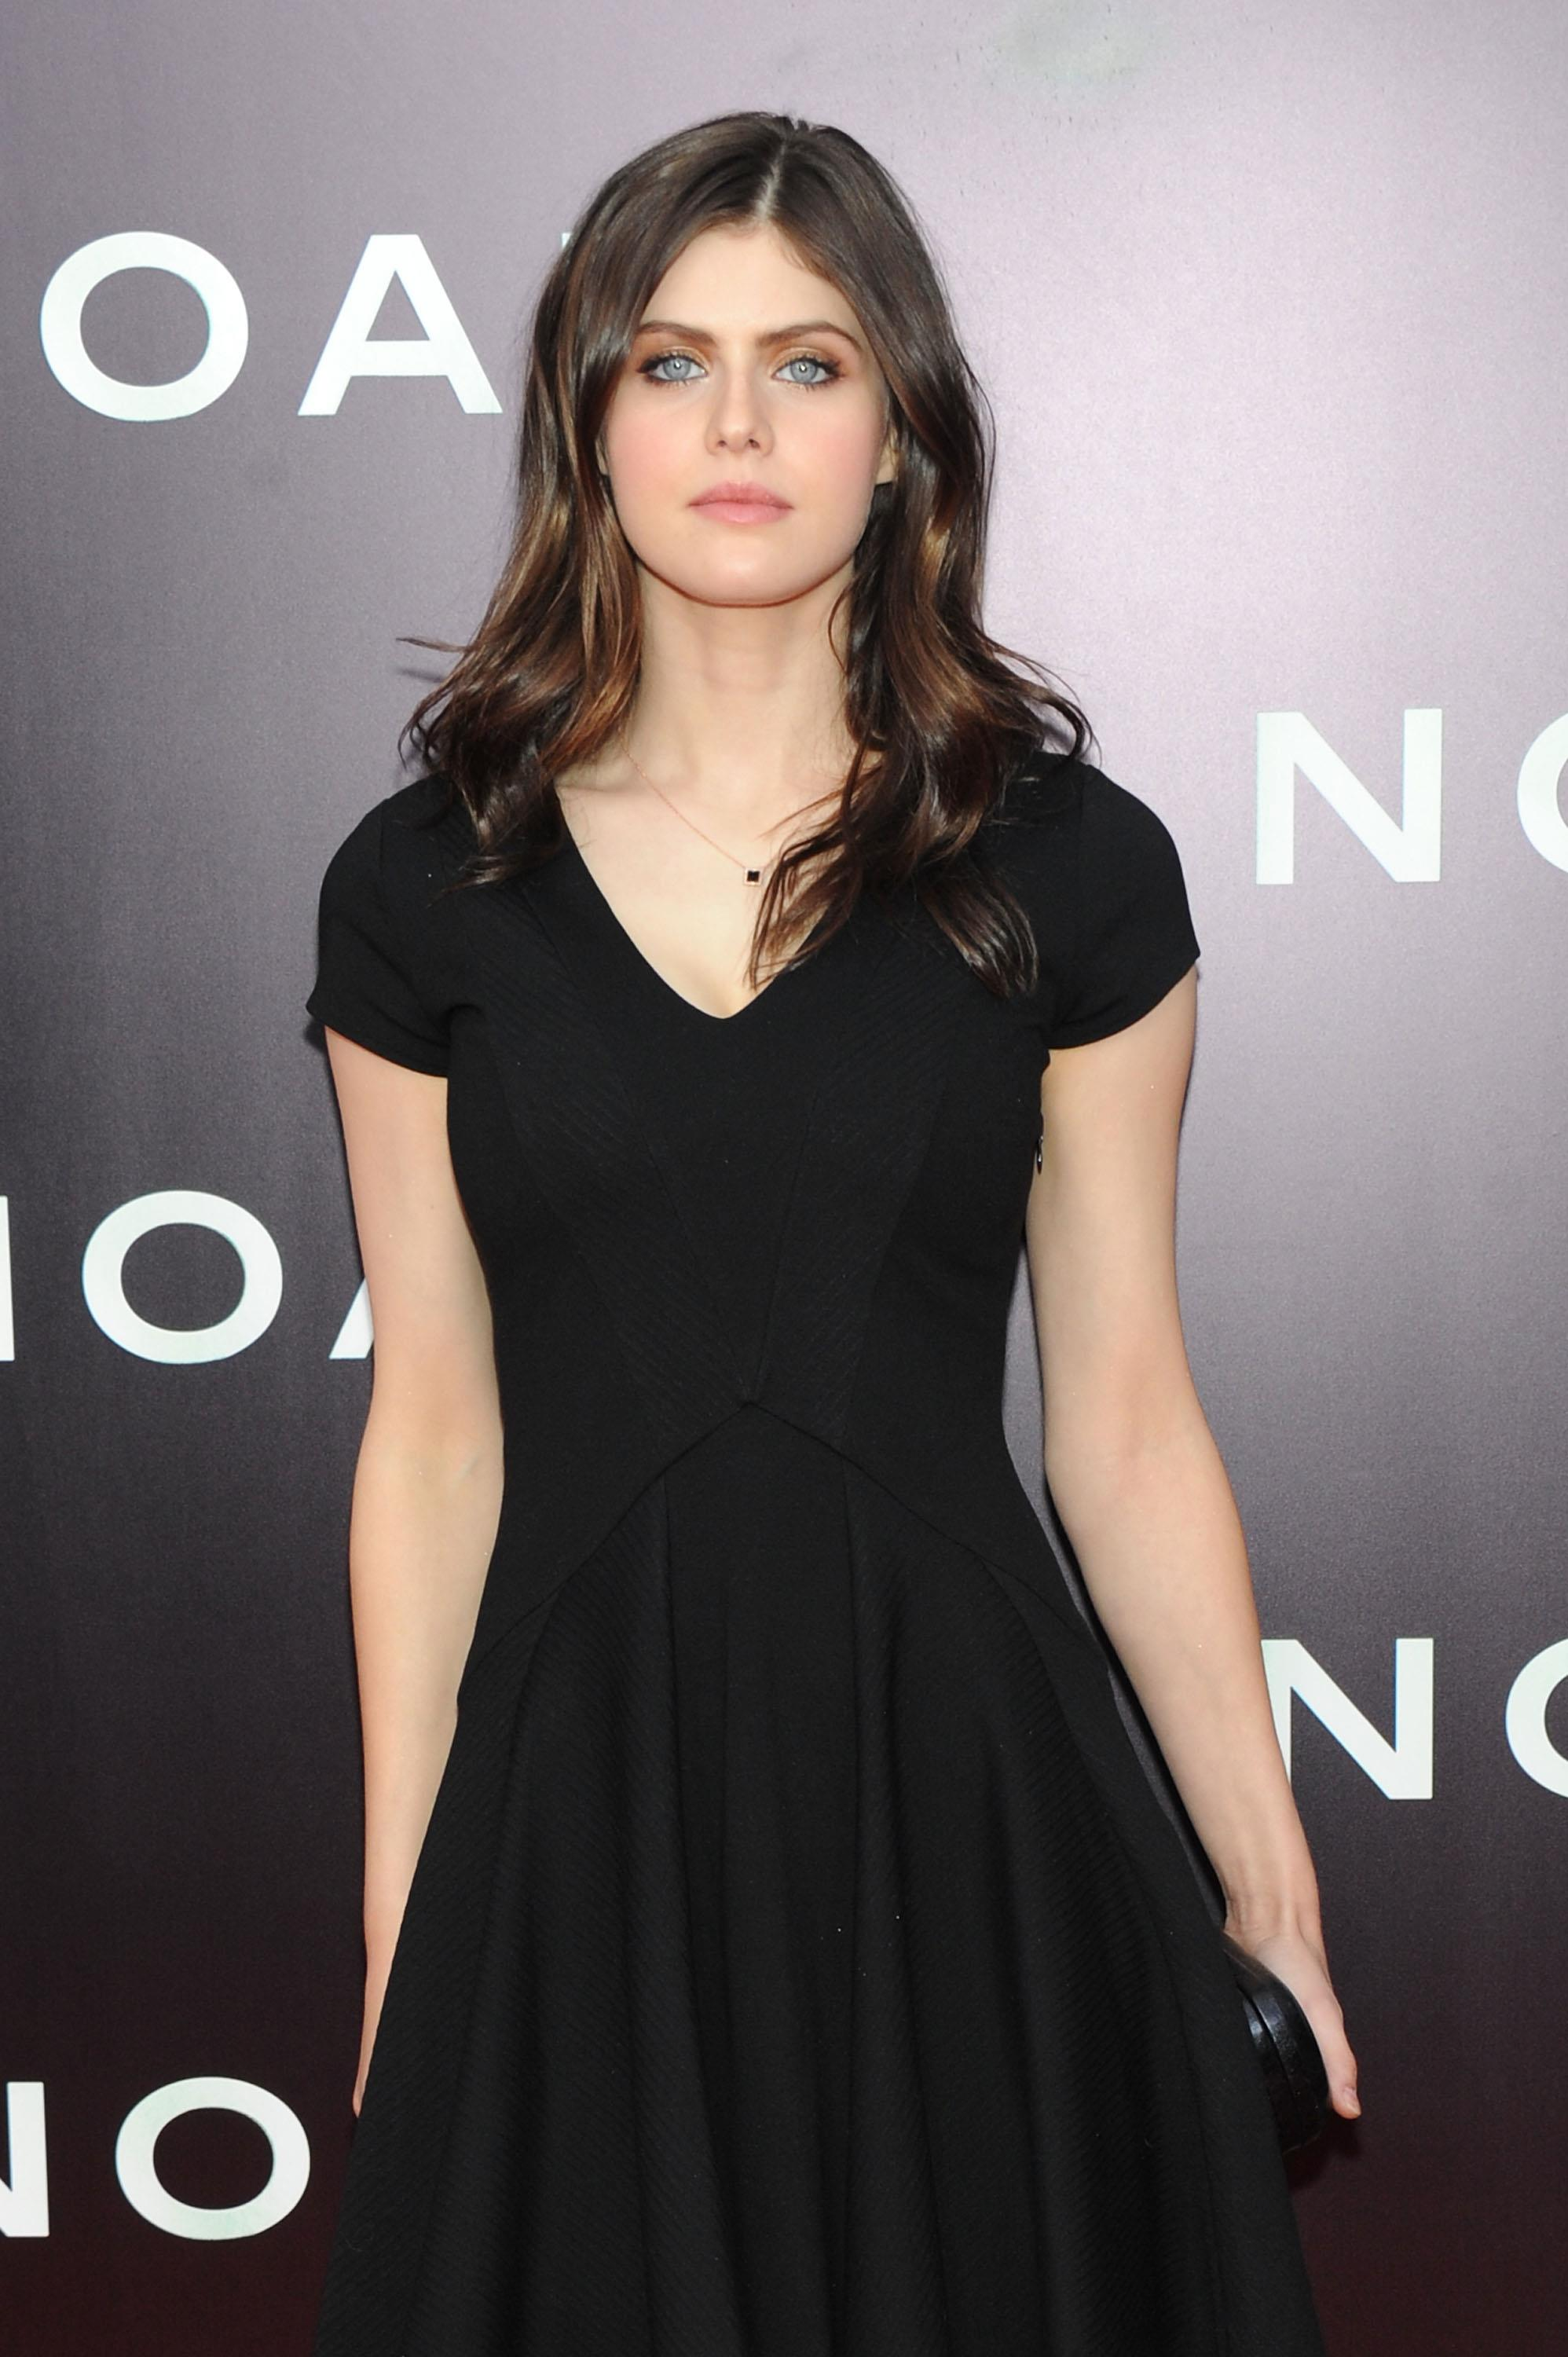 Alexandra daddario true detective - 3 part 5